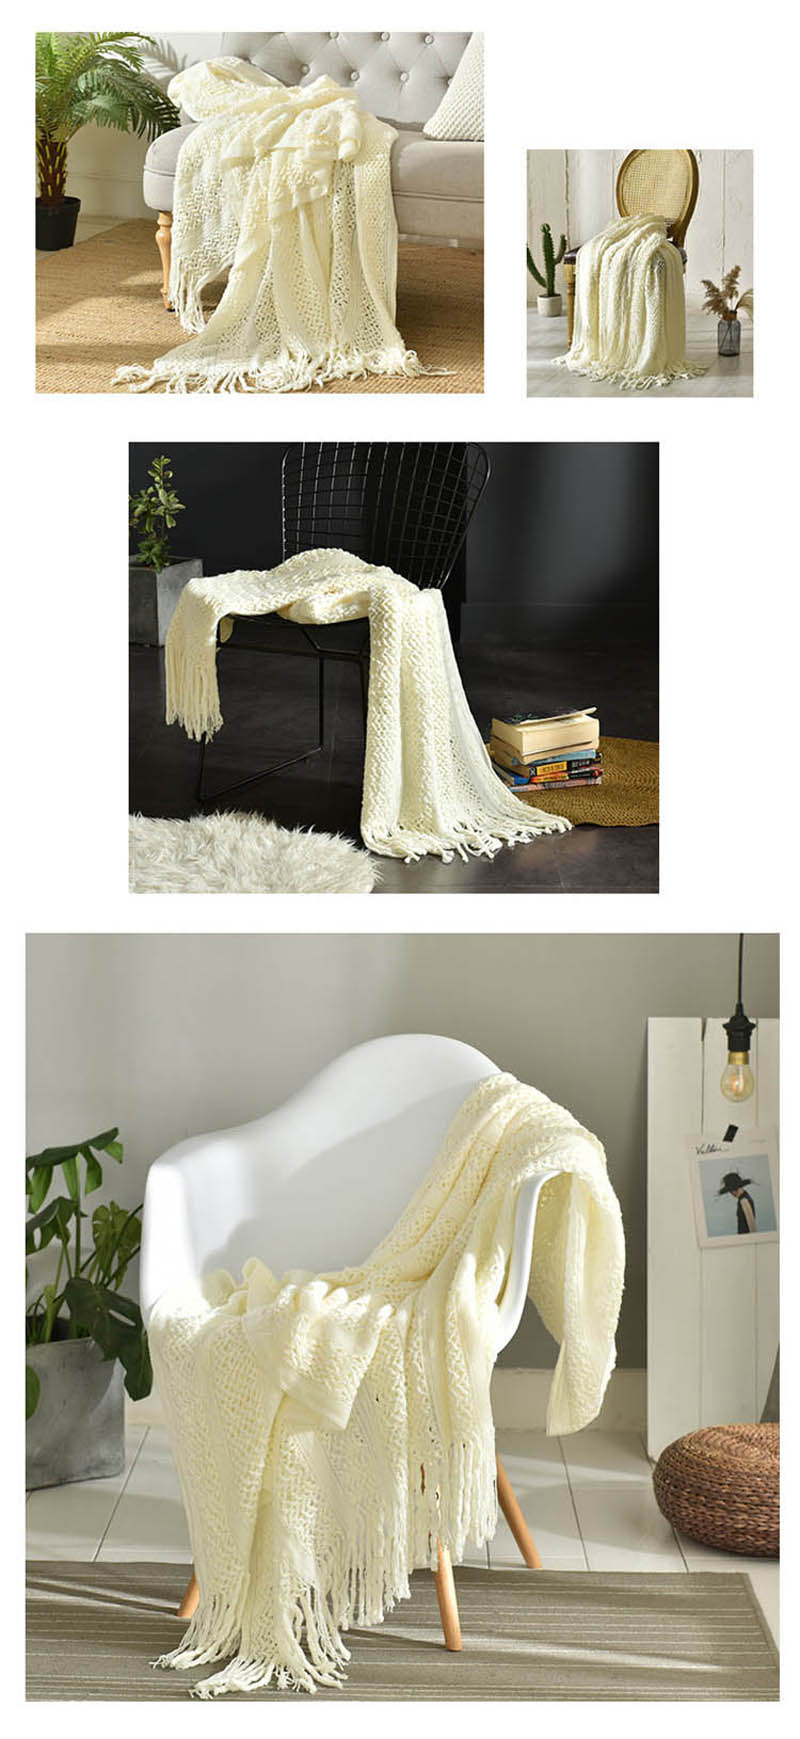 Bohemia Striped Knitted Couch Blanket Tassel Sofa Armchair Cover Office Respite Quilt Travel Plaid 130x150cm